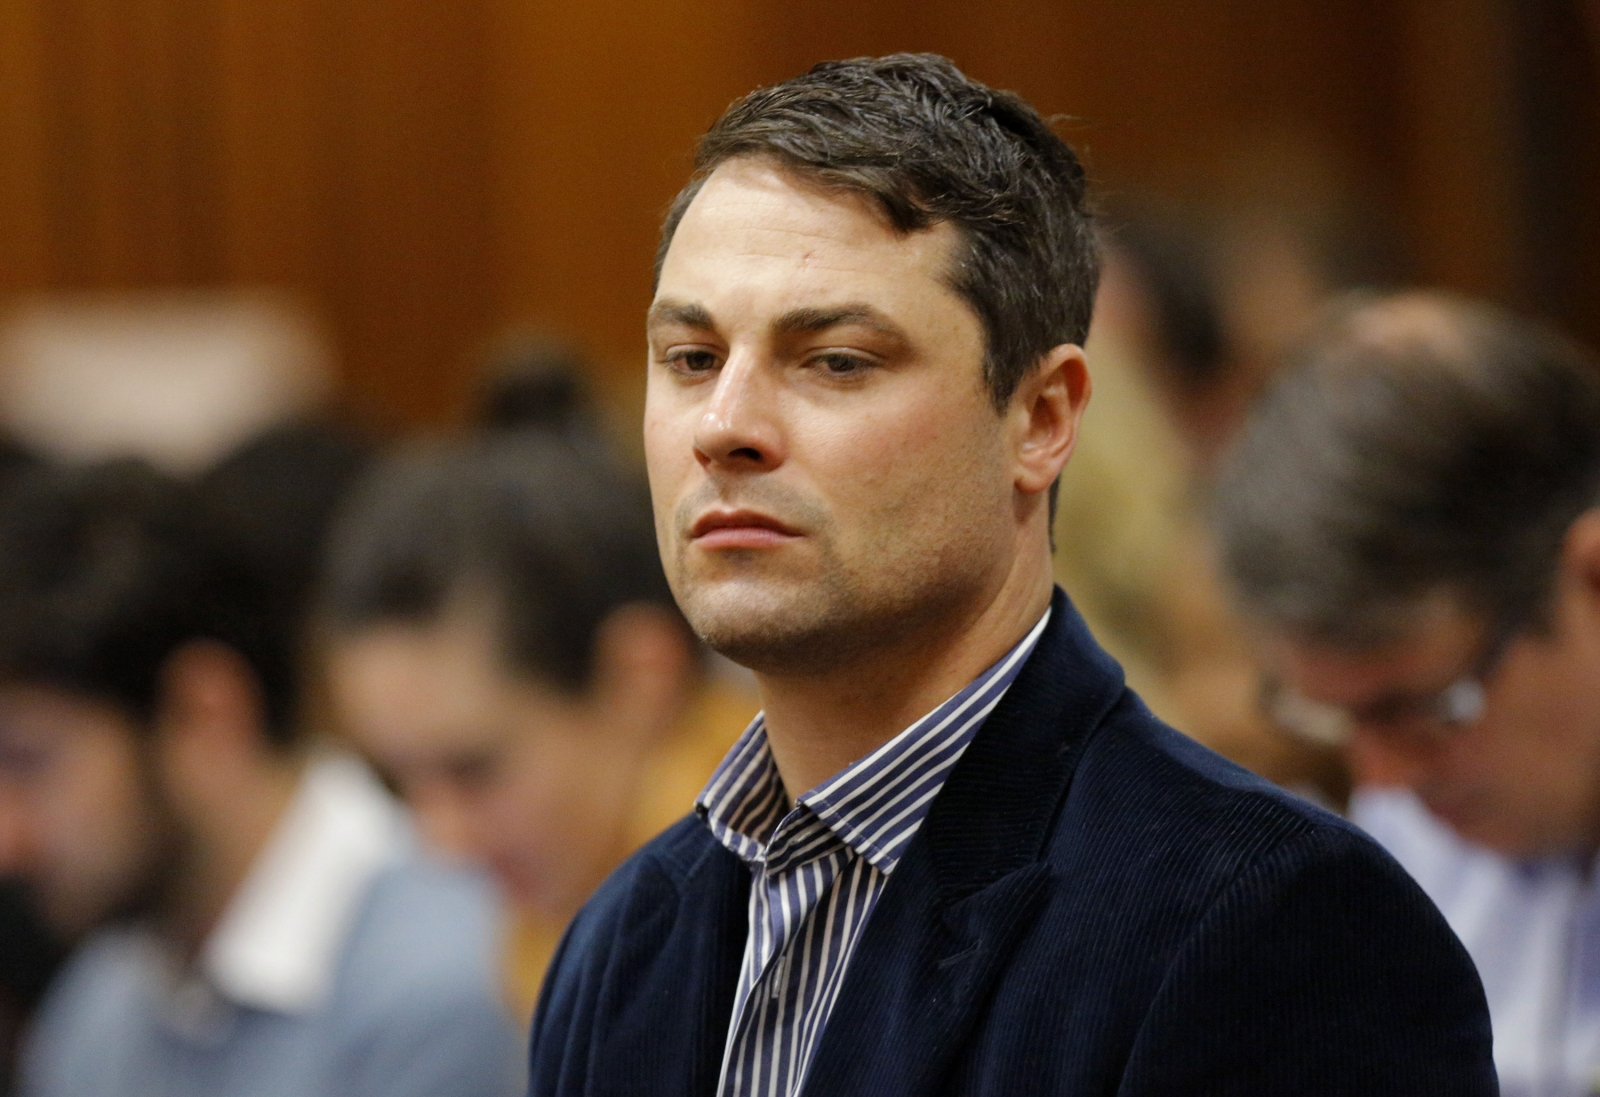 Carl Pistorius to be charged with reckless driving over car crash which nearly killed him